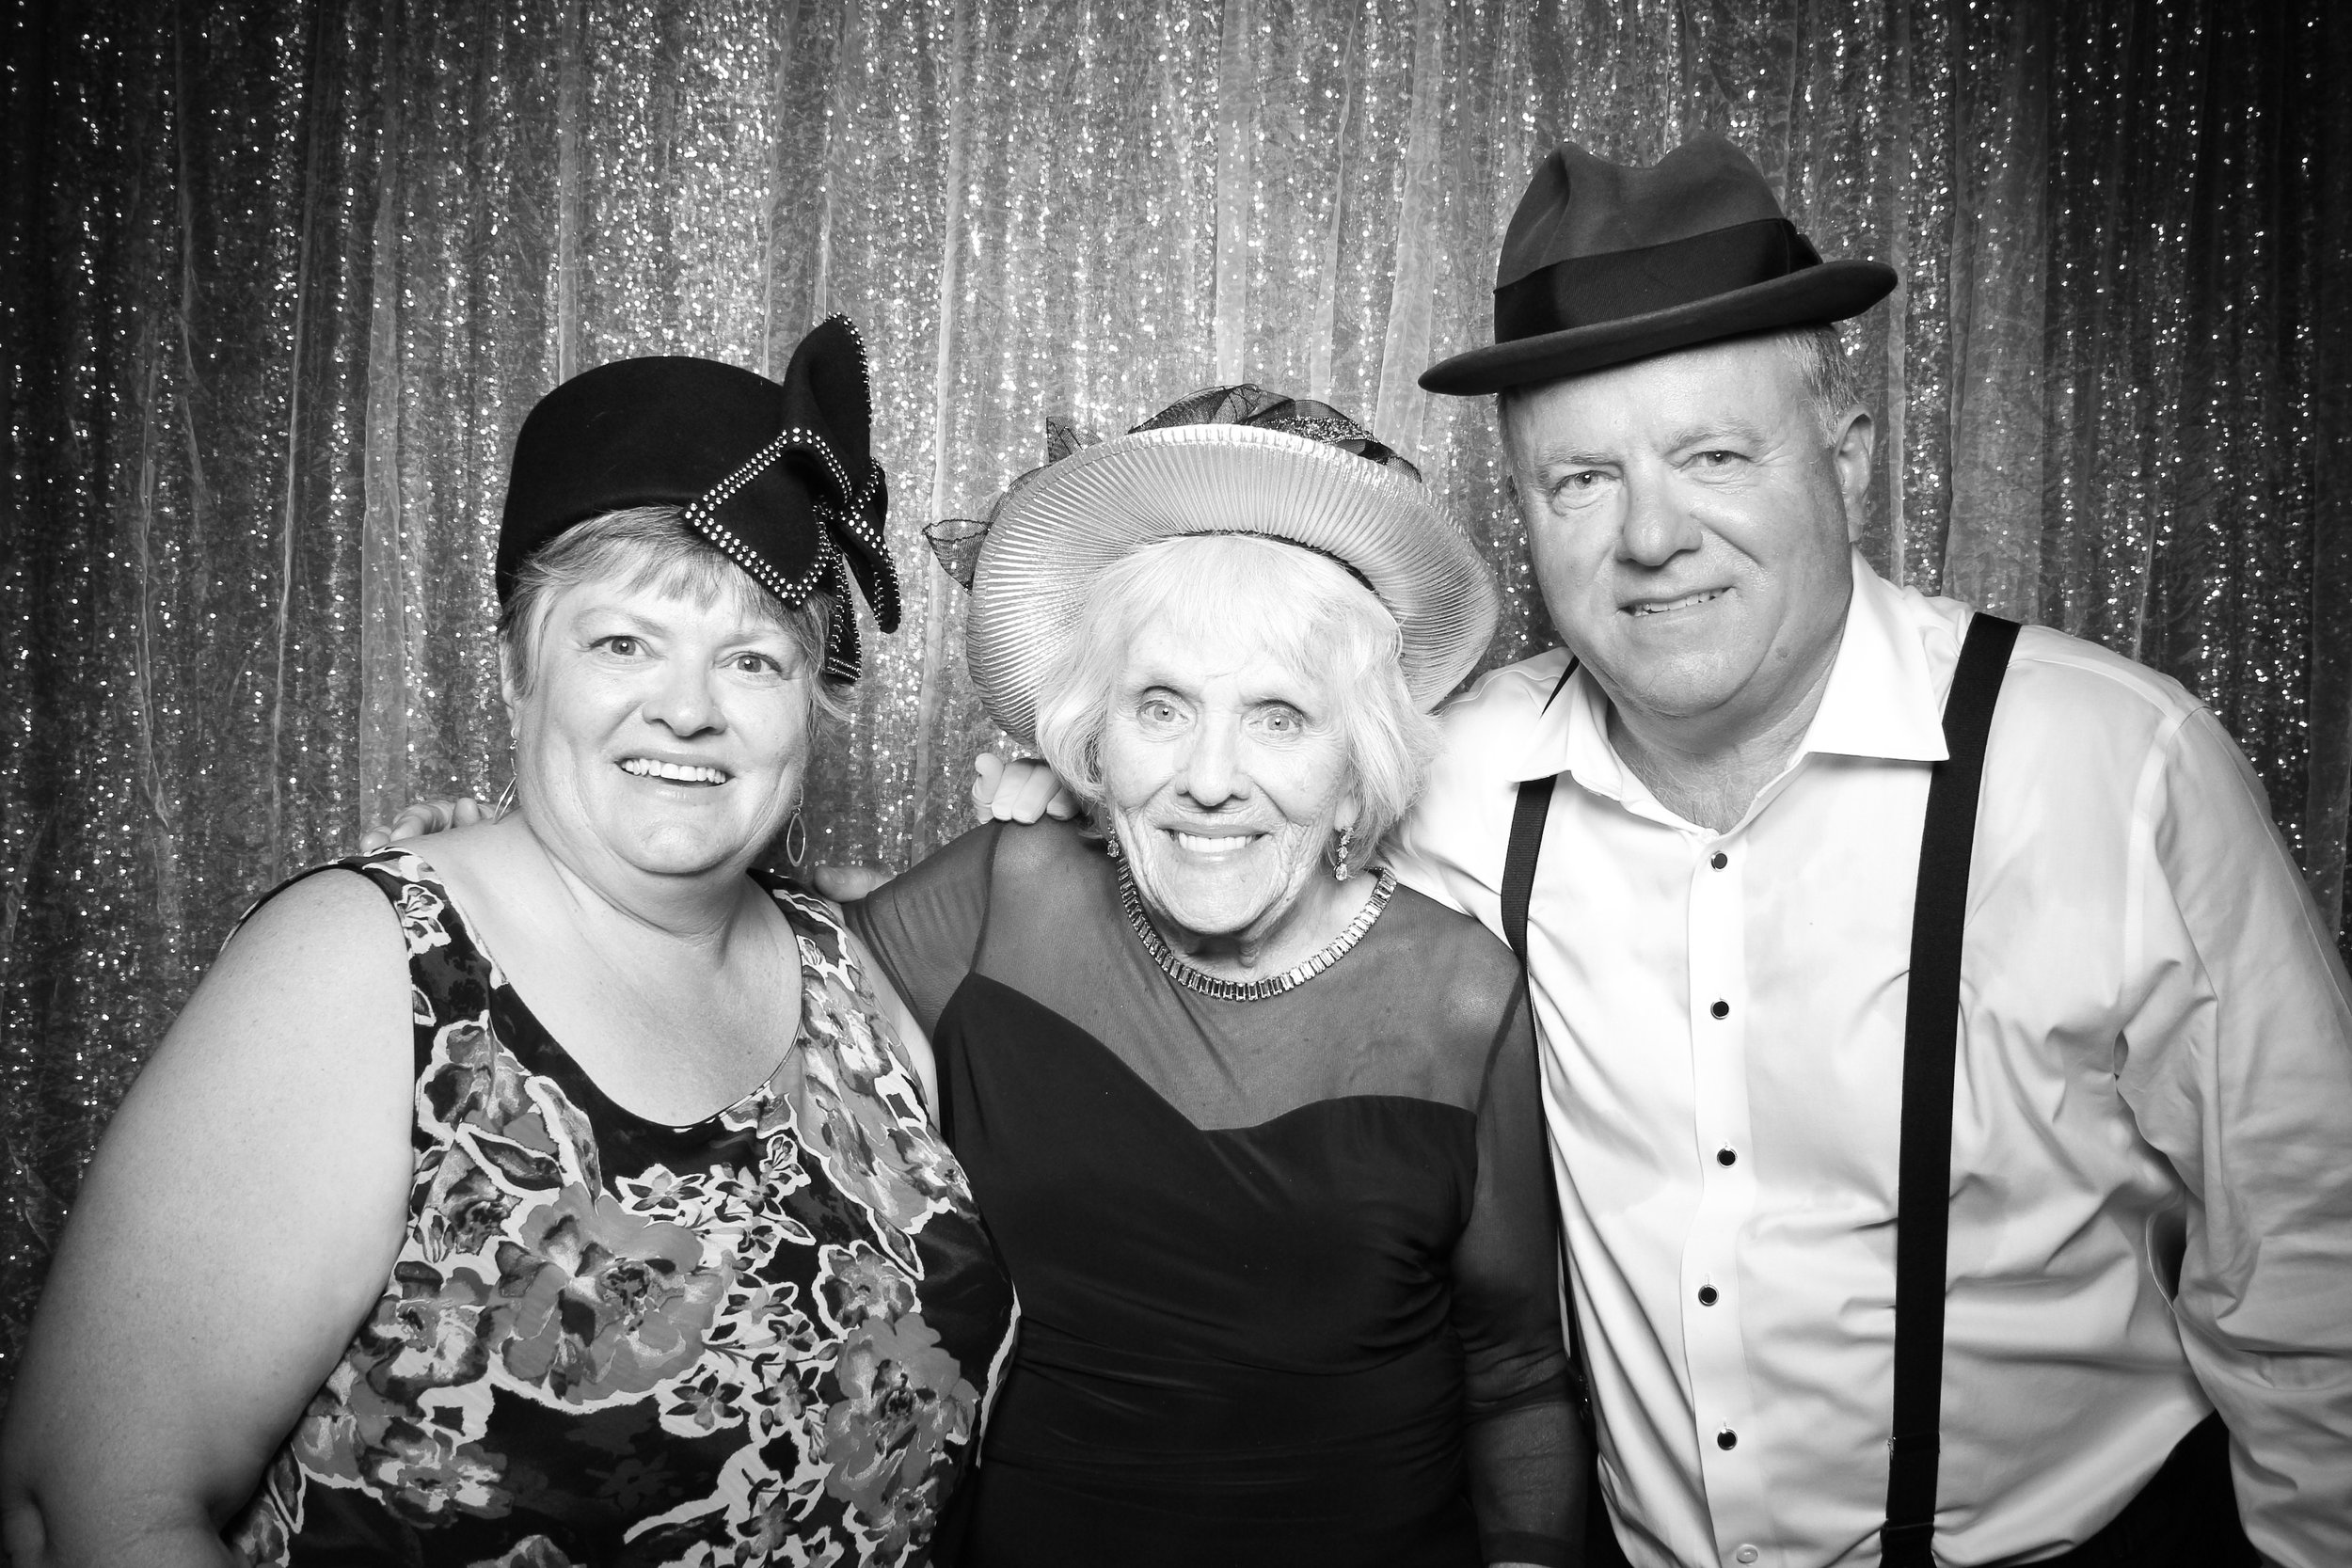 Chicago_Vintage_Wedding_Photobooth_Medinah_Country_Club_10.jpg